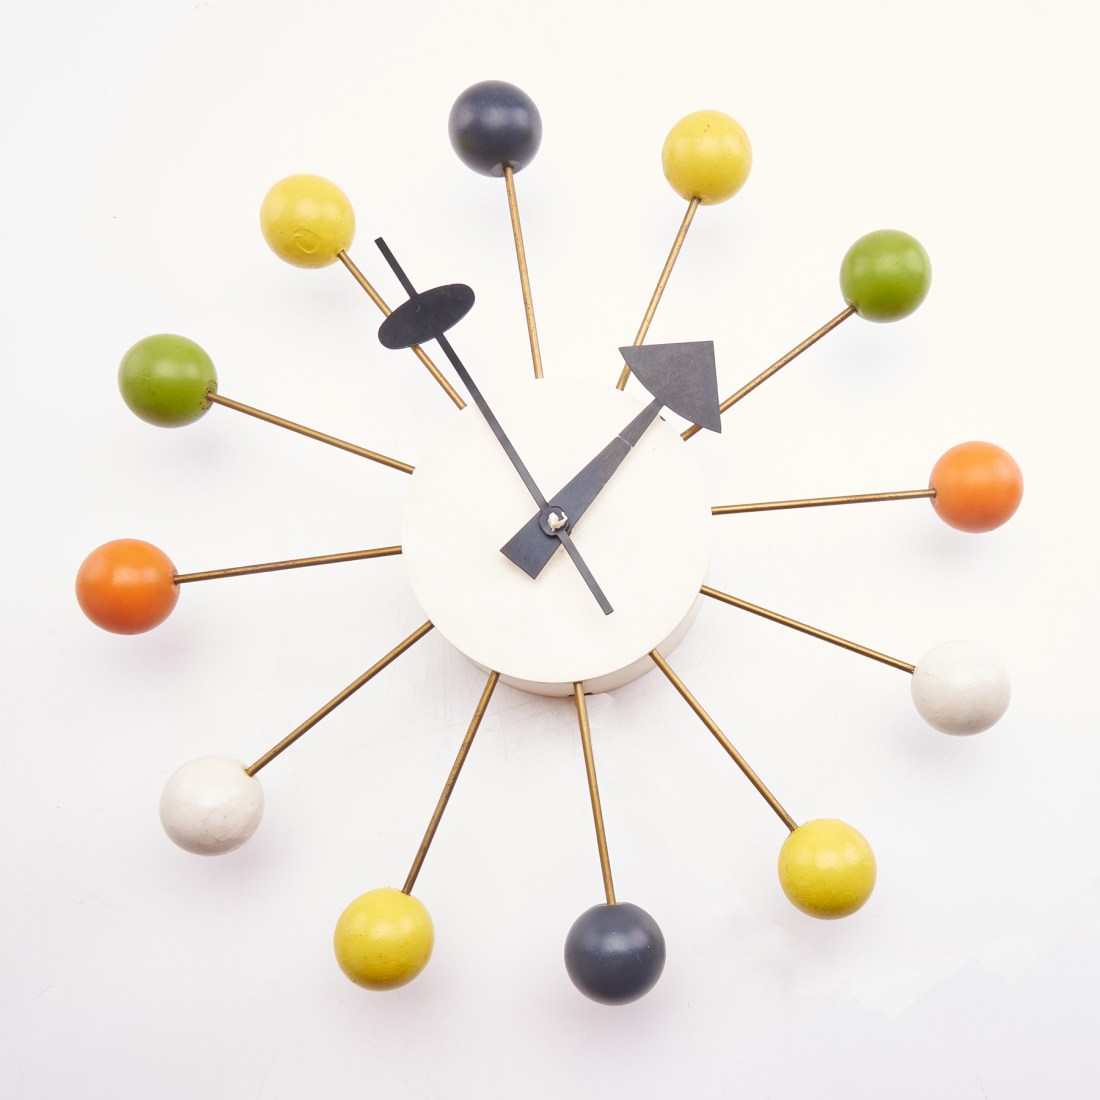 "George Nelson's ball wall clock is a mid-century design icon. It resembles a sun with rays streaming from it. Each of the twelve ""rays"" ends with a ball that represents an hour. This particular version featured balls that had different colors: black, green, yellow, white, and orange."